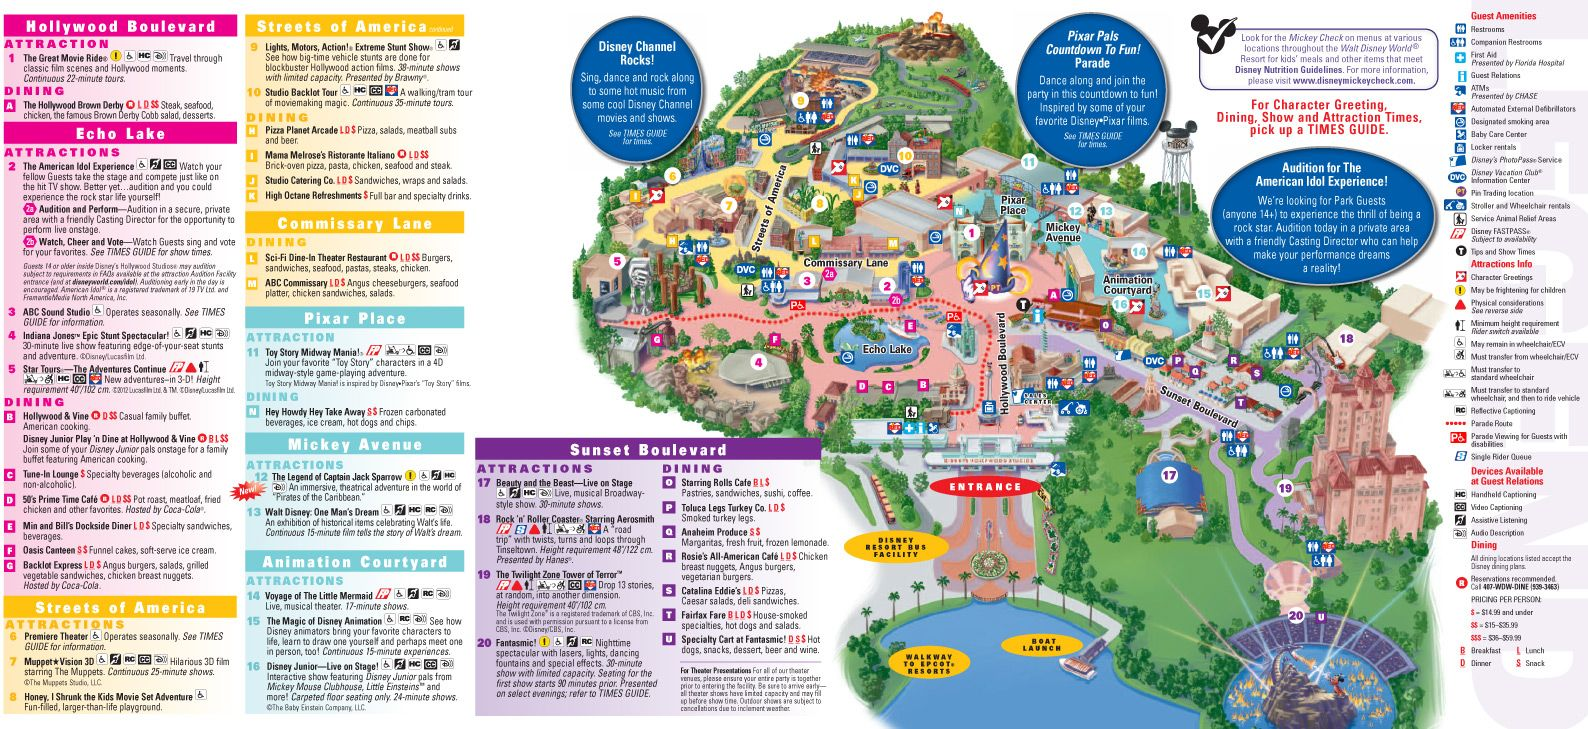 picture regarding Printable Maps of Disney World titled walt disney entire world map 2014 printable Walt Disney World wide